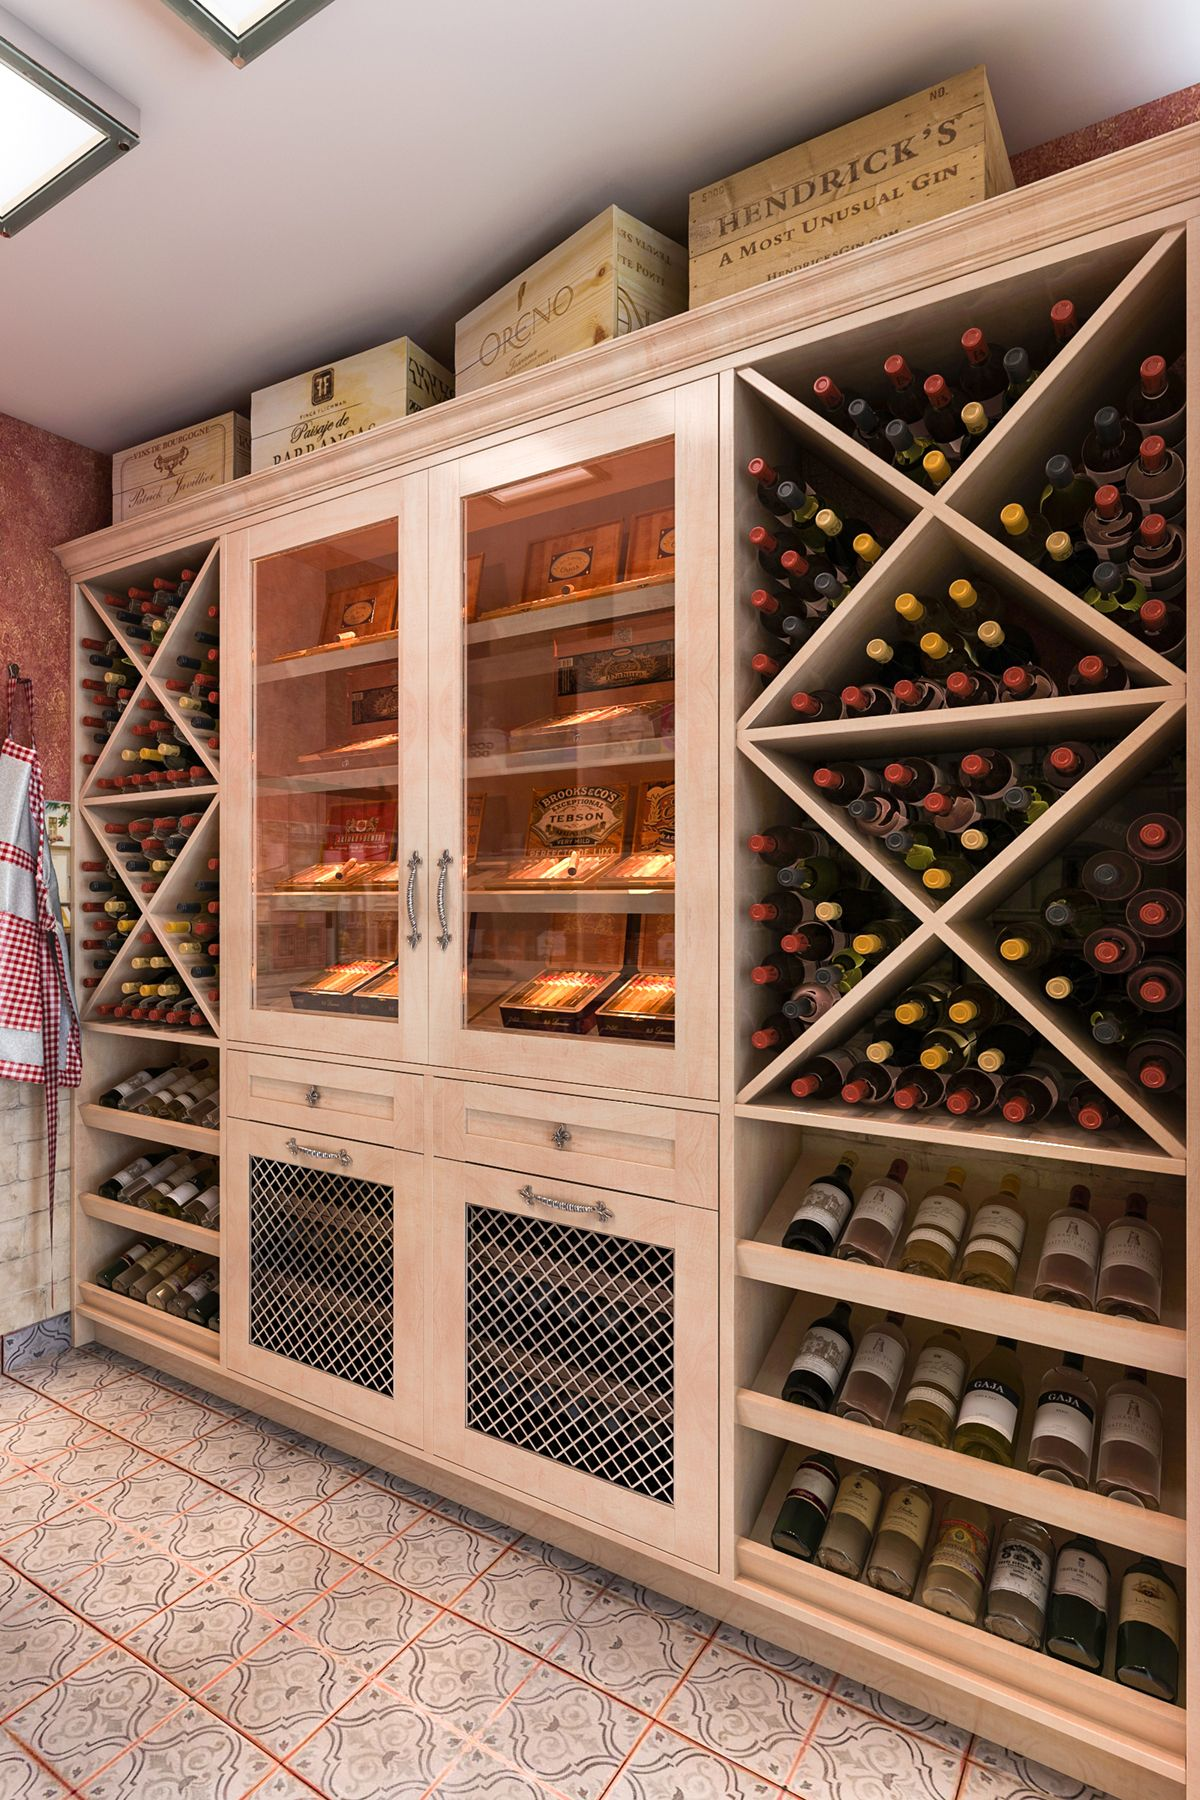 custom cellar wine storage rack francisco larger home racking a california single image for with racks click san redwood bottle contractor irvine